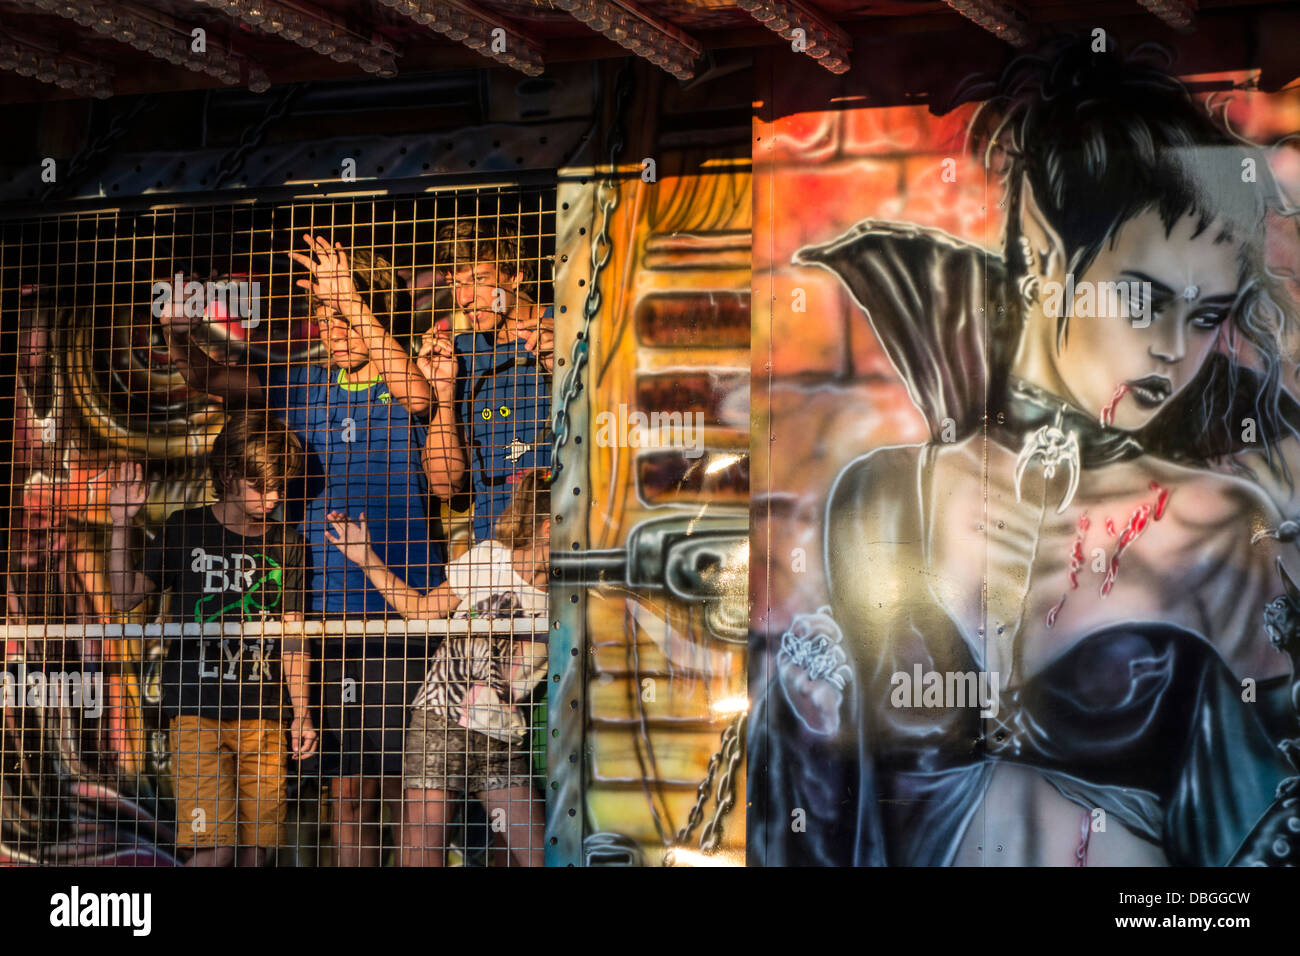 Children in fairground attraction haunted house at travelling funfair / traveling fun fair - Stock Image